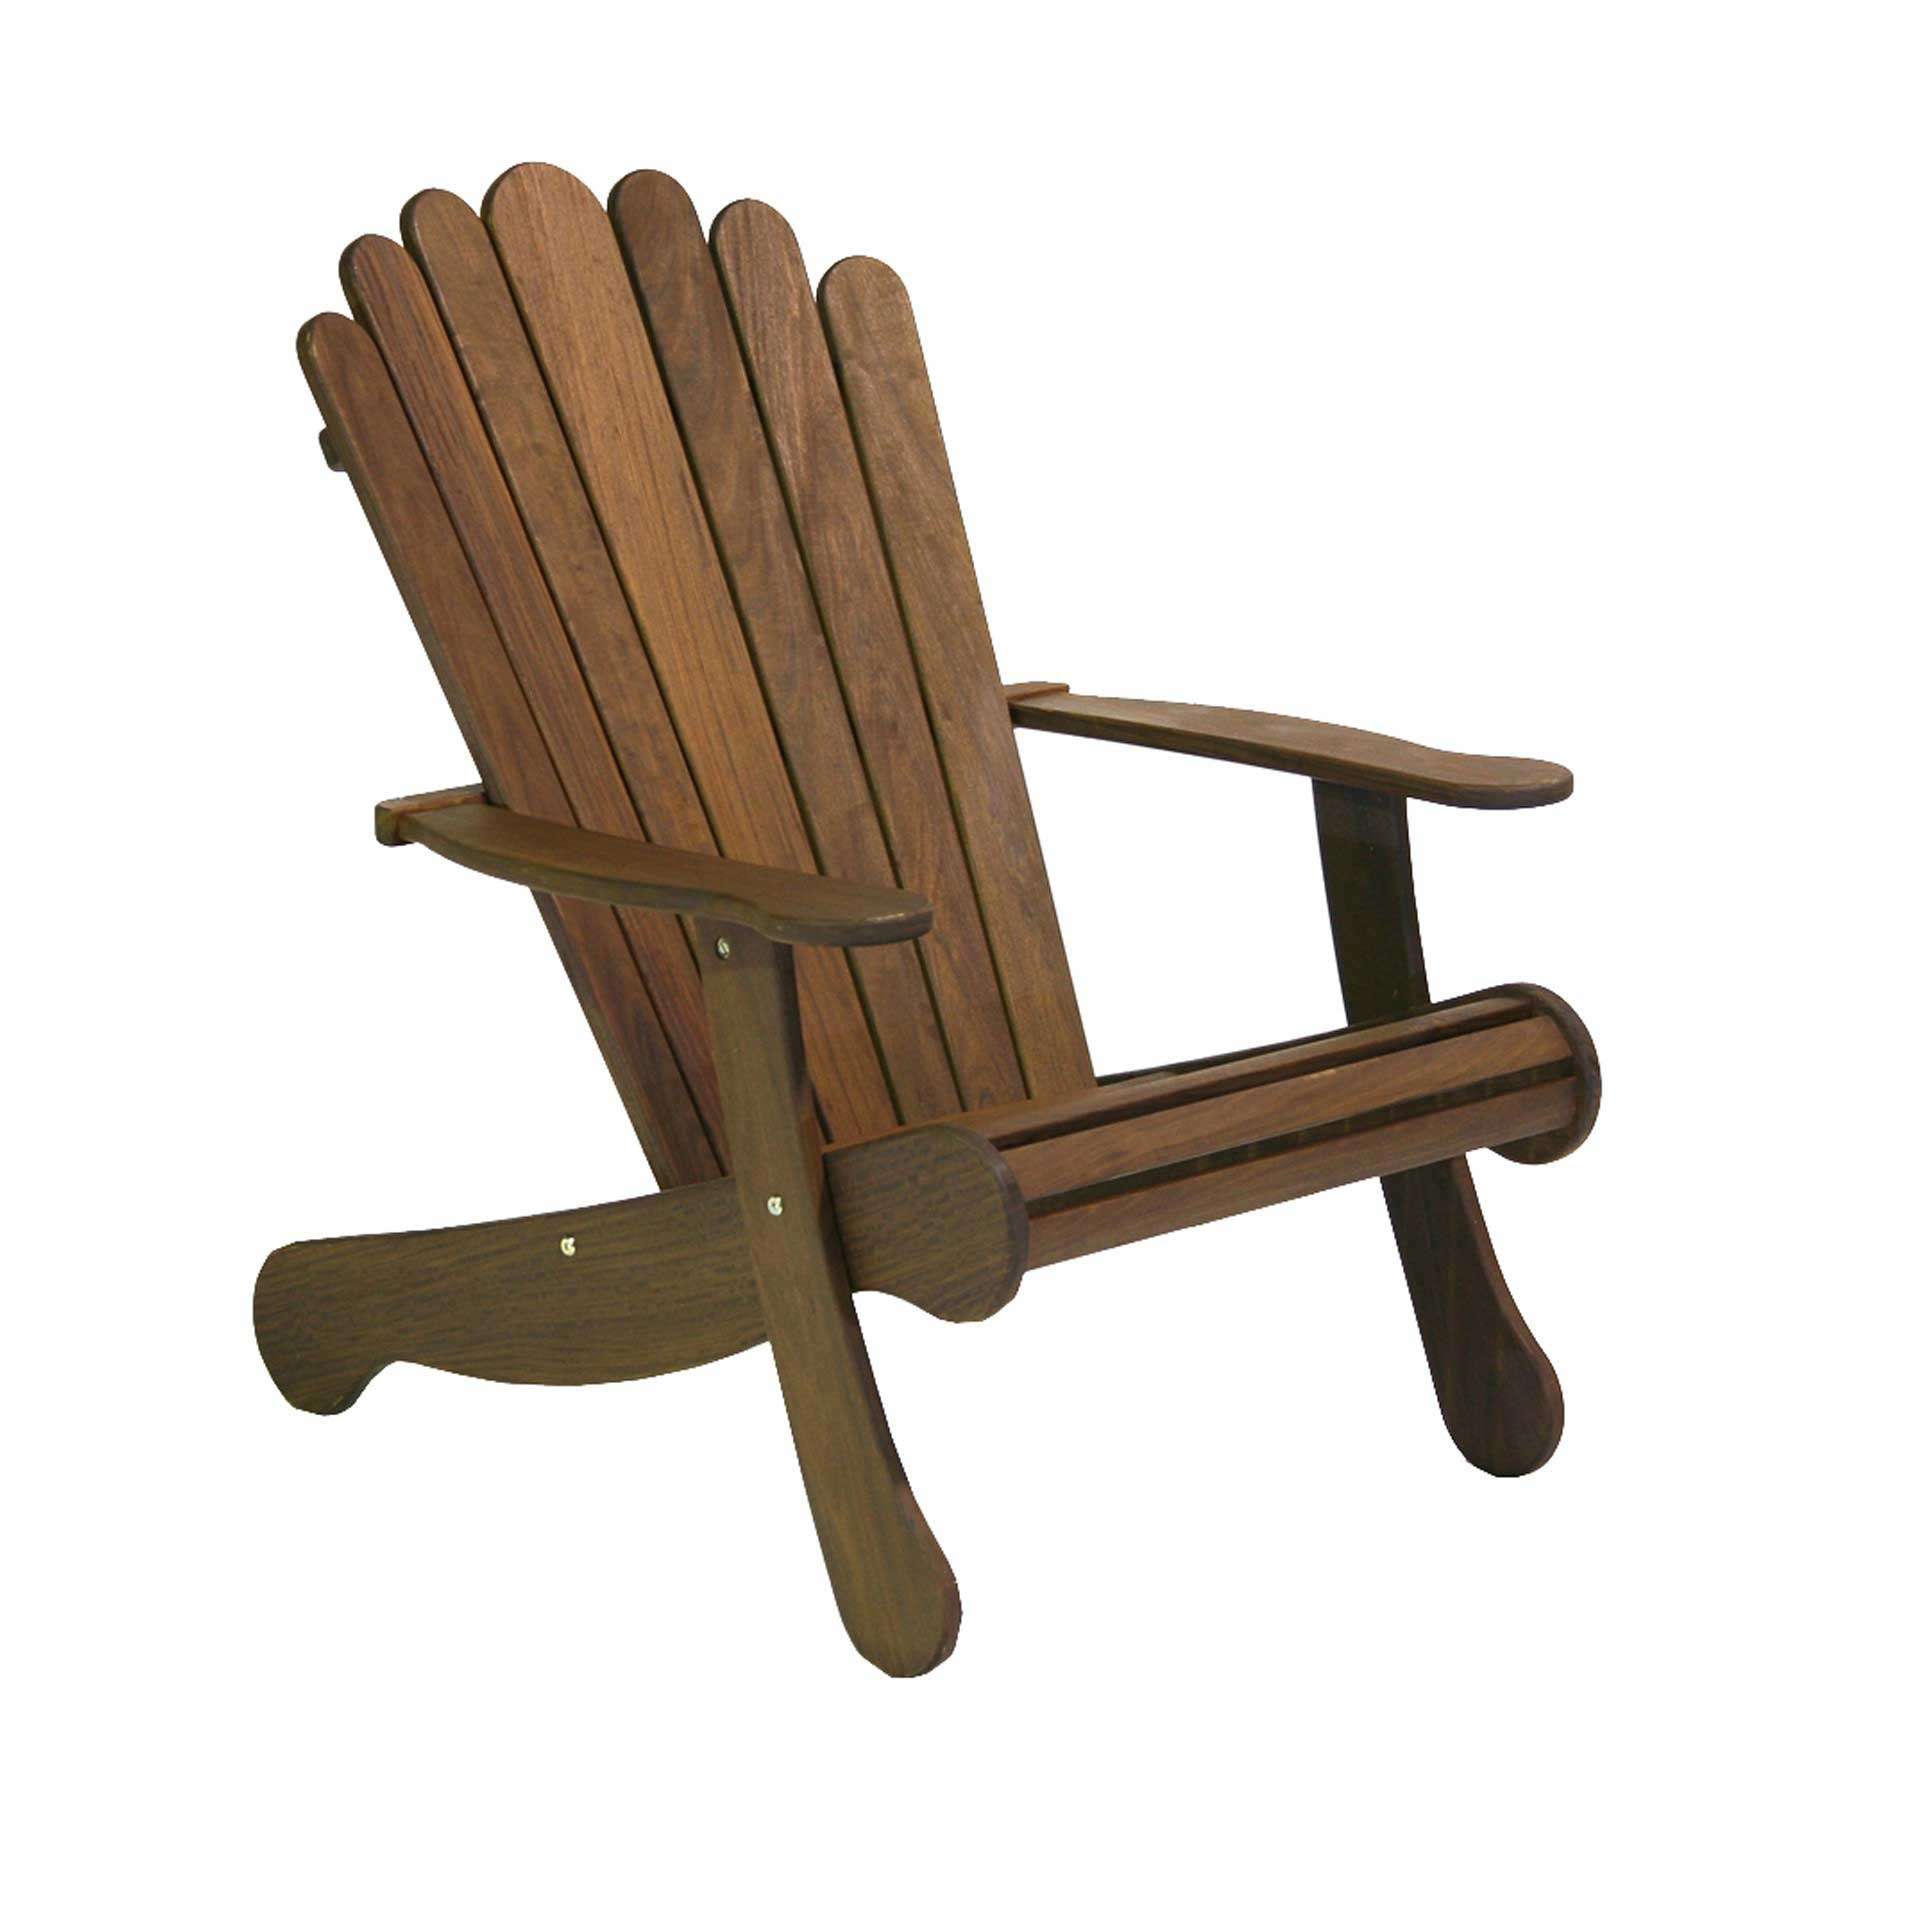 ipe adirondack chairs teal colored jensen leisure chair outdoor furniture